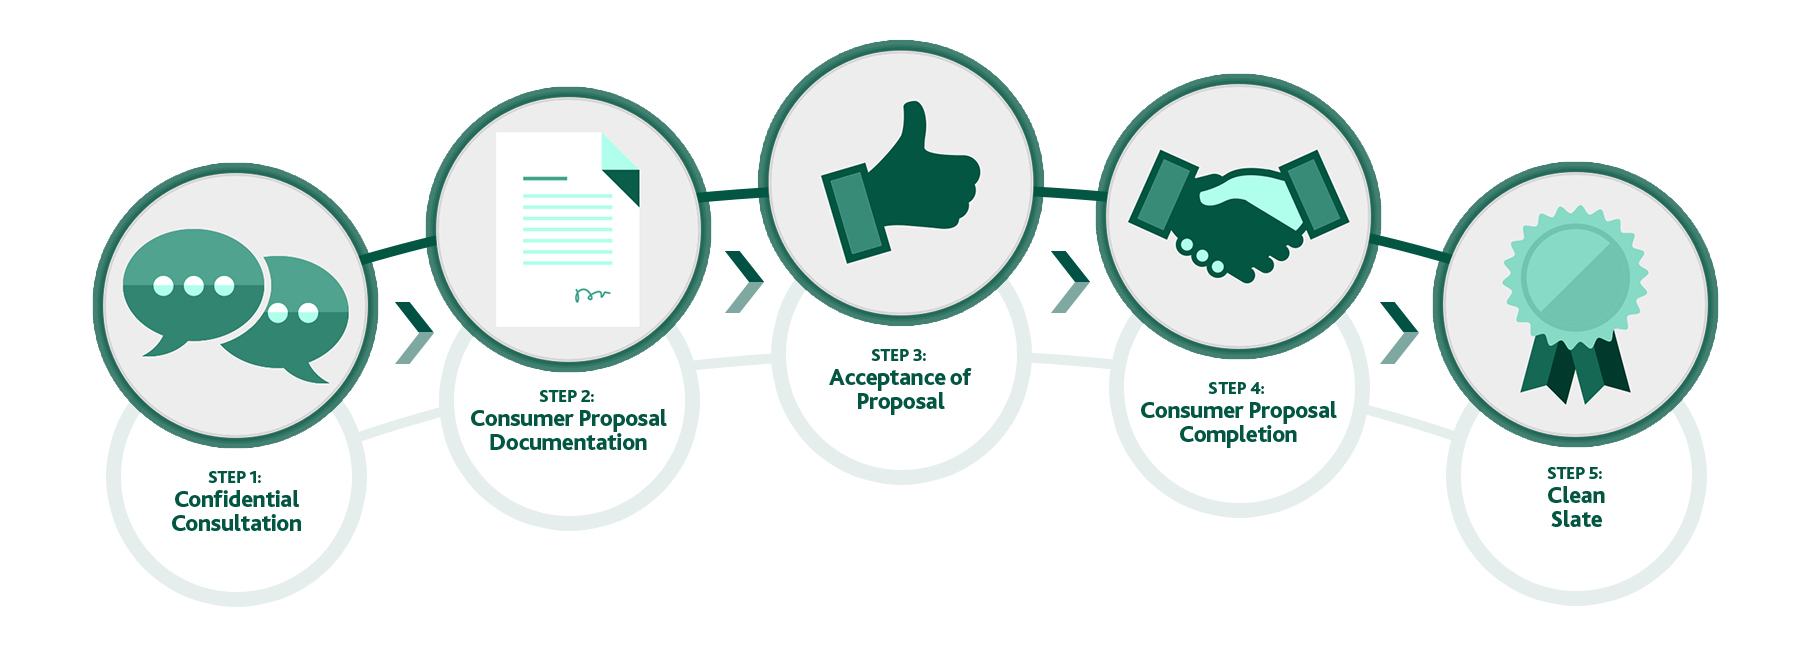 Consumer Proposal: Step 1 Confidential consultation; Step 2 Consumer proposal documentation; Step 3 Acceptance of proposal; Step 4 Consumer proposal completion; Step 5 Clean slate.